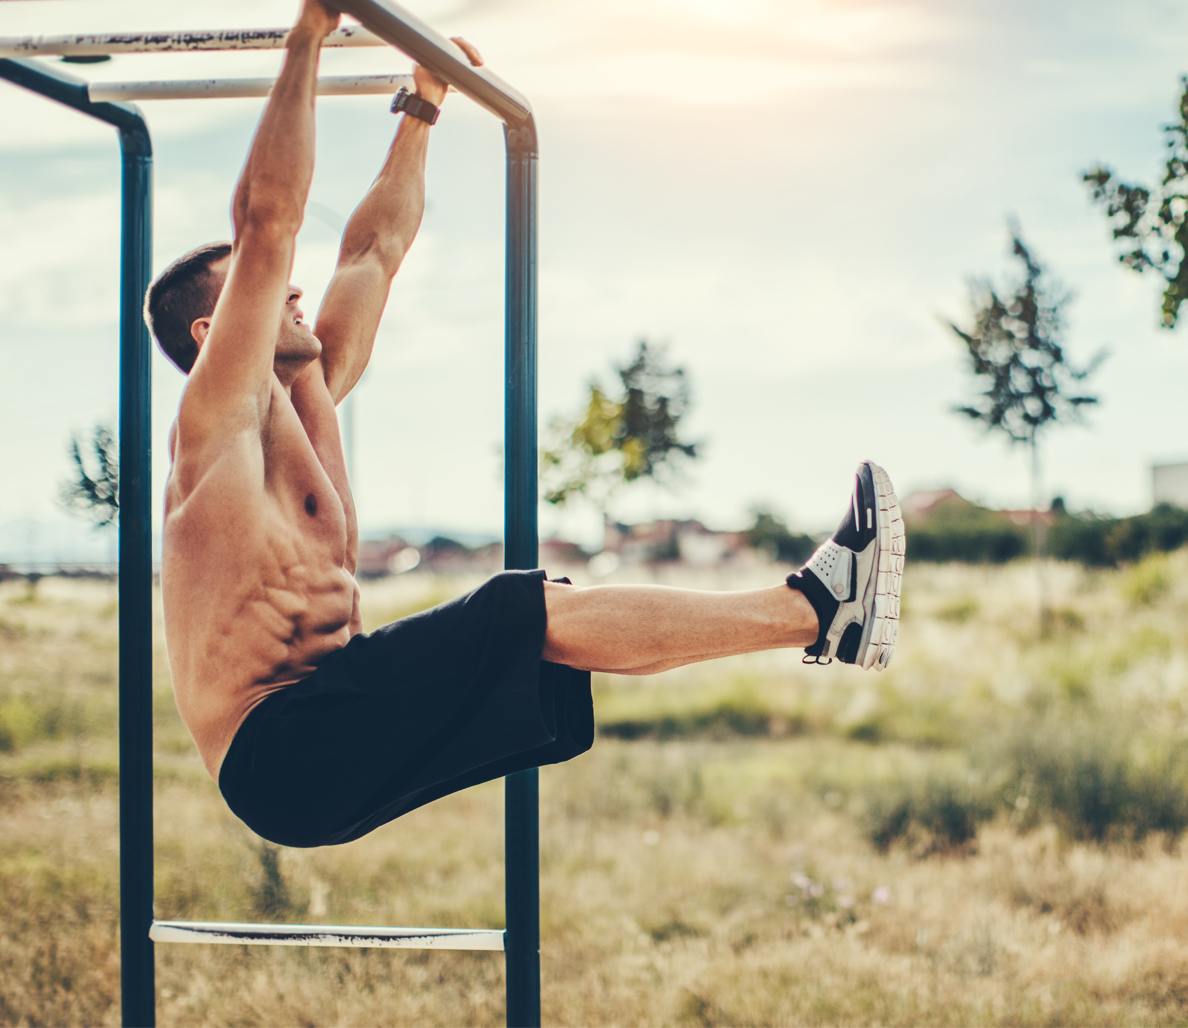 Hanging Leg Raise | Health and Fitness Bible